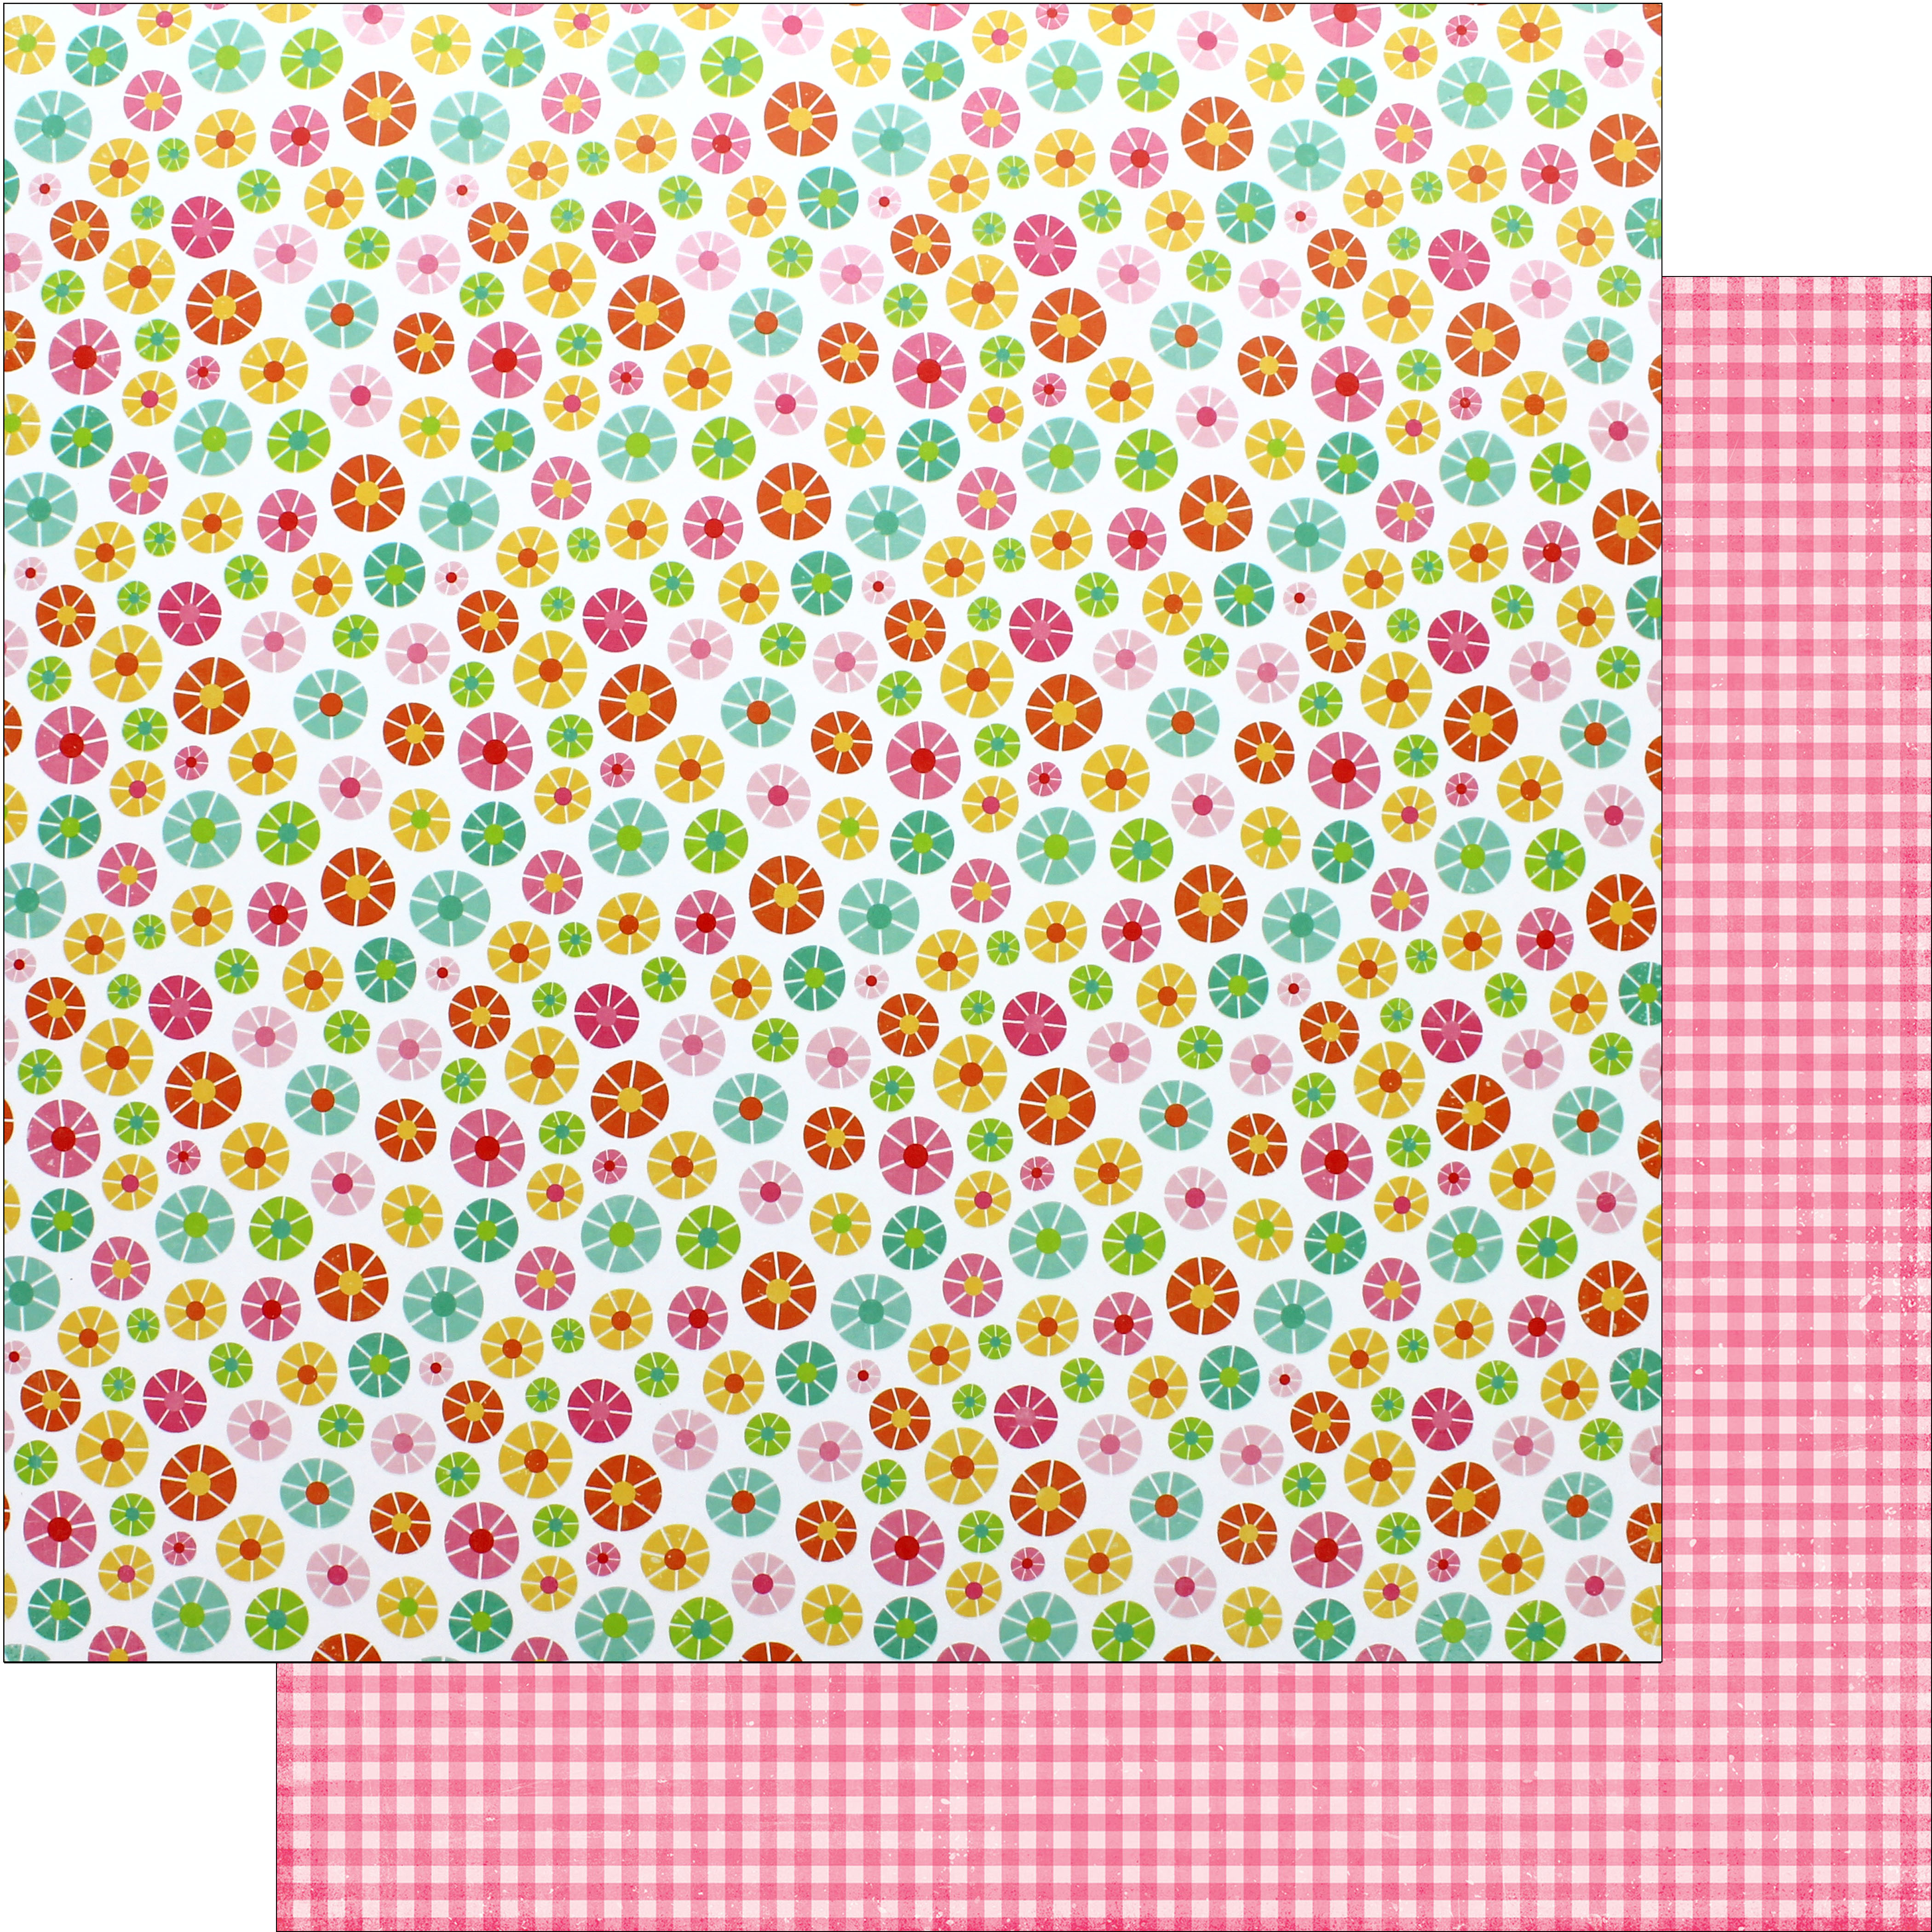 Scrapbook paper cart - Scrapbook Paper Echo Park Collection Celebrate Spring Paper 12 X 12 Blooming Flowers